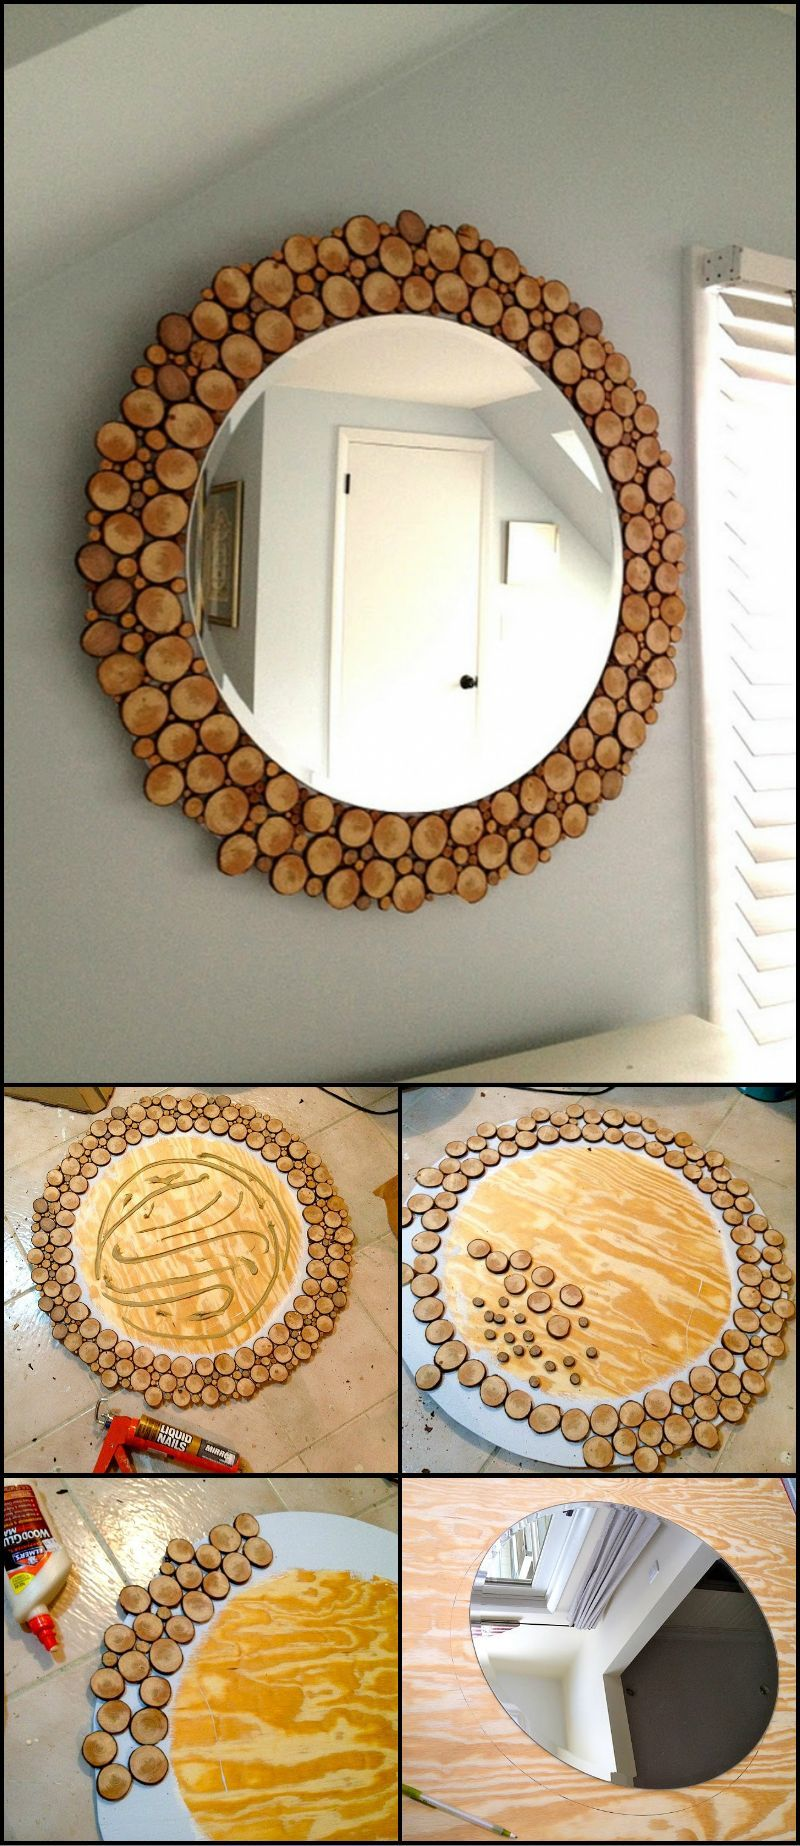 Diy Wood Mirror Great Project For Home Decor Step By Guide Your Next Homedecorideas